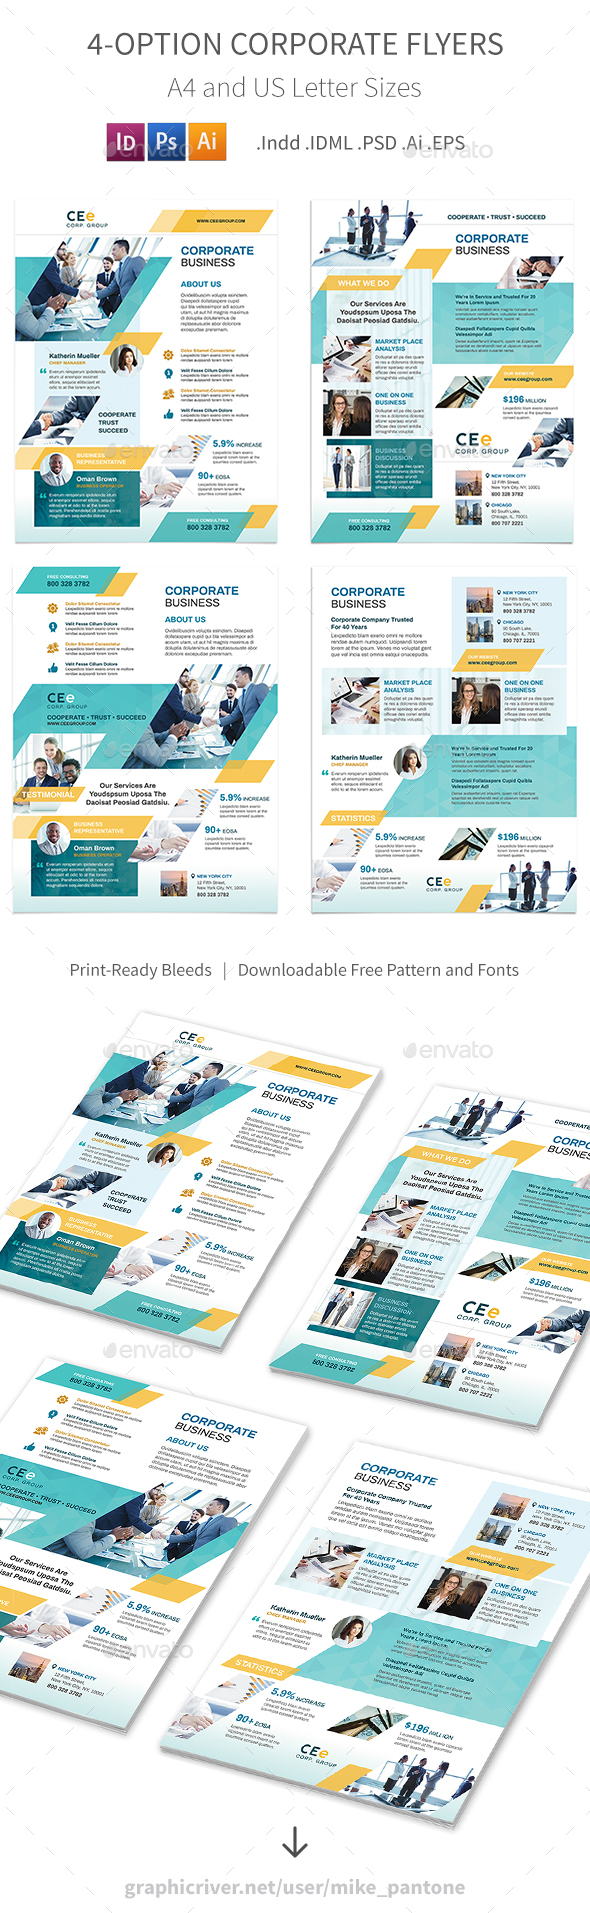 GraphicRiver Corporate Business Flyers 5 4 Options 20835436